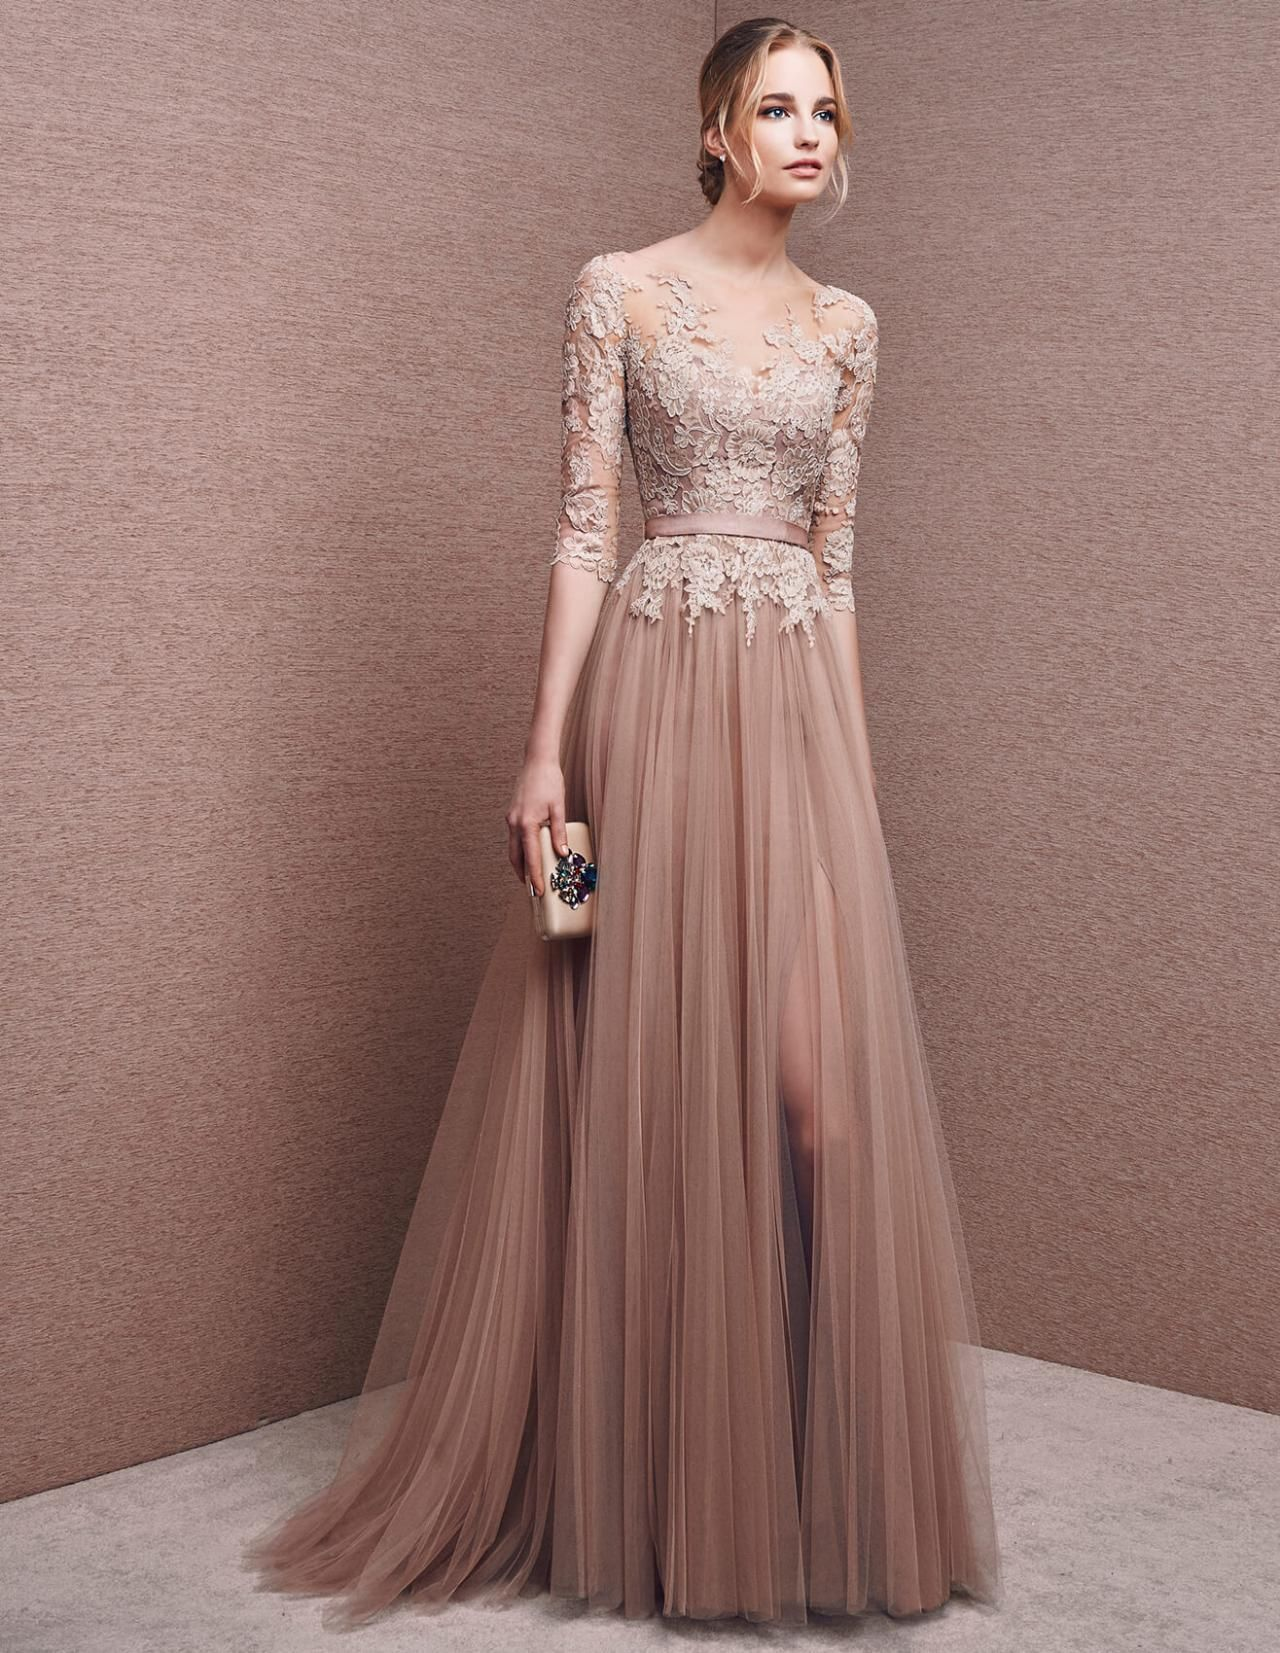 Womenus sleeves lace top chiffon formal evening dresses long